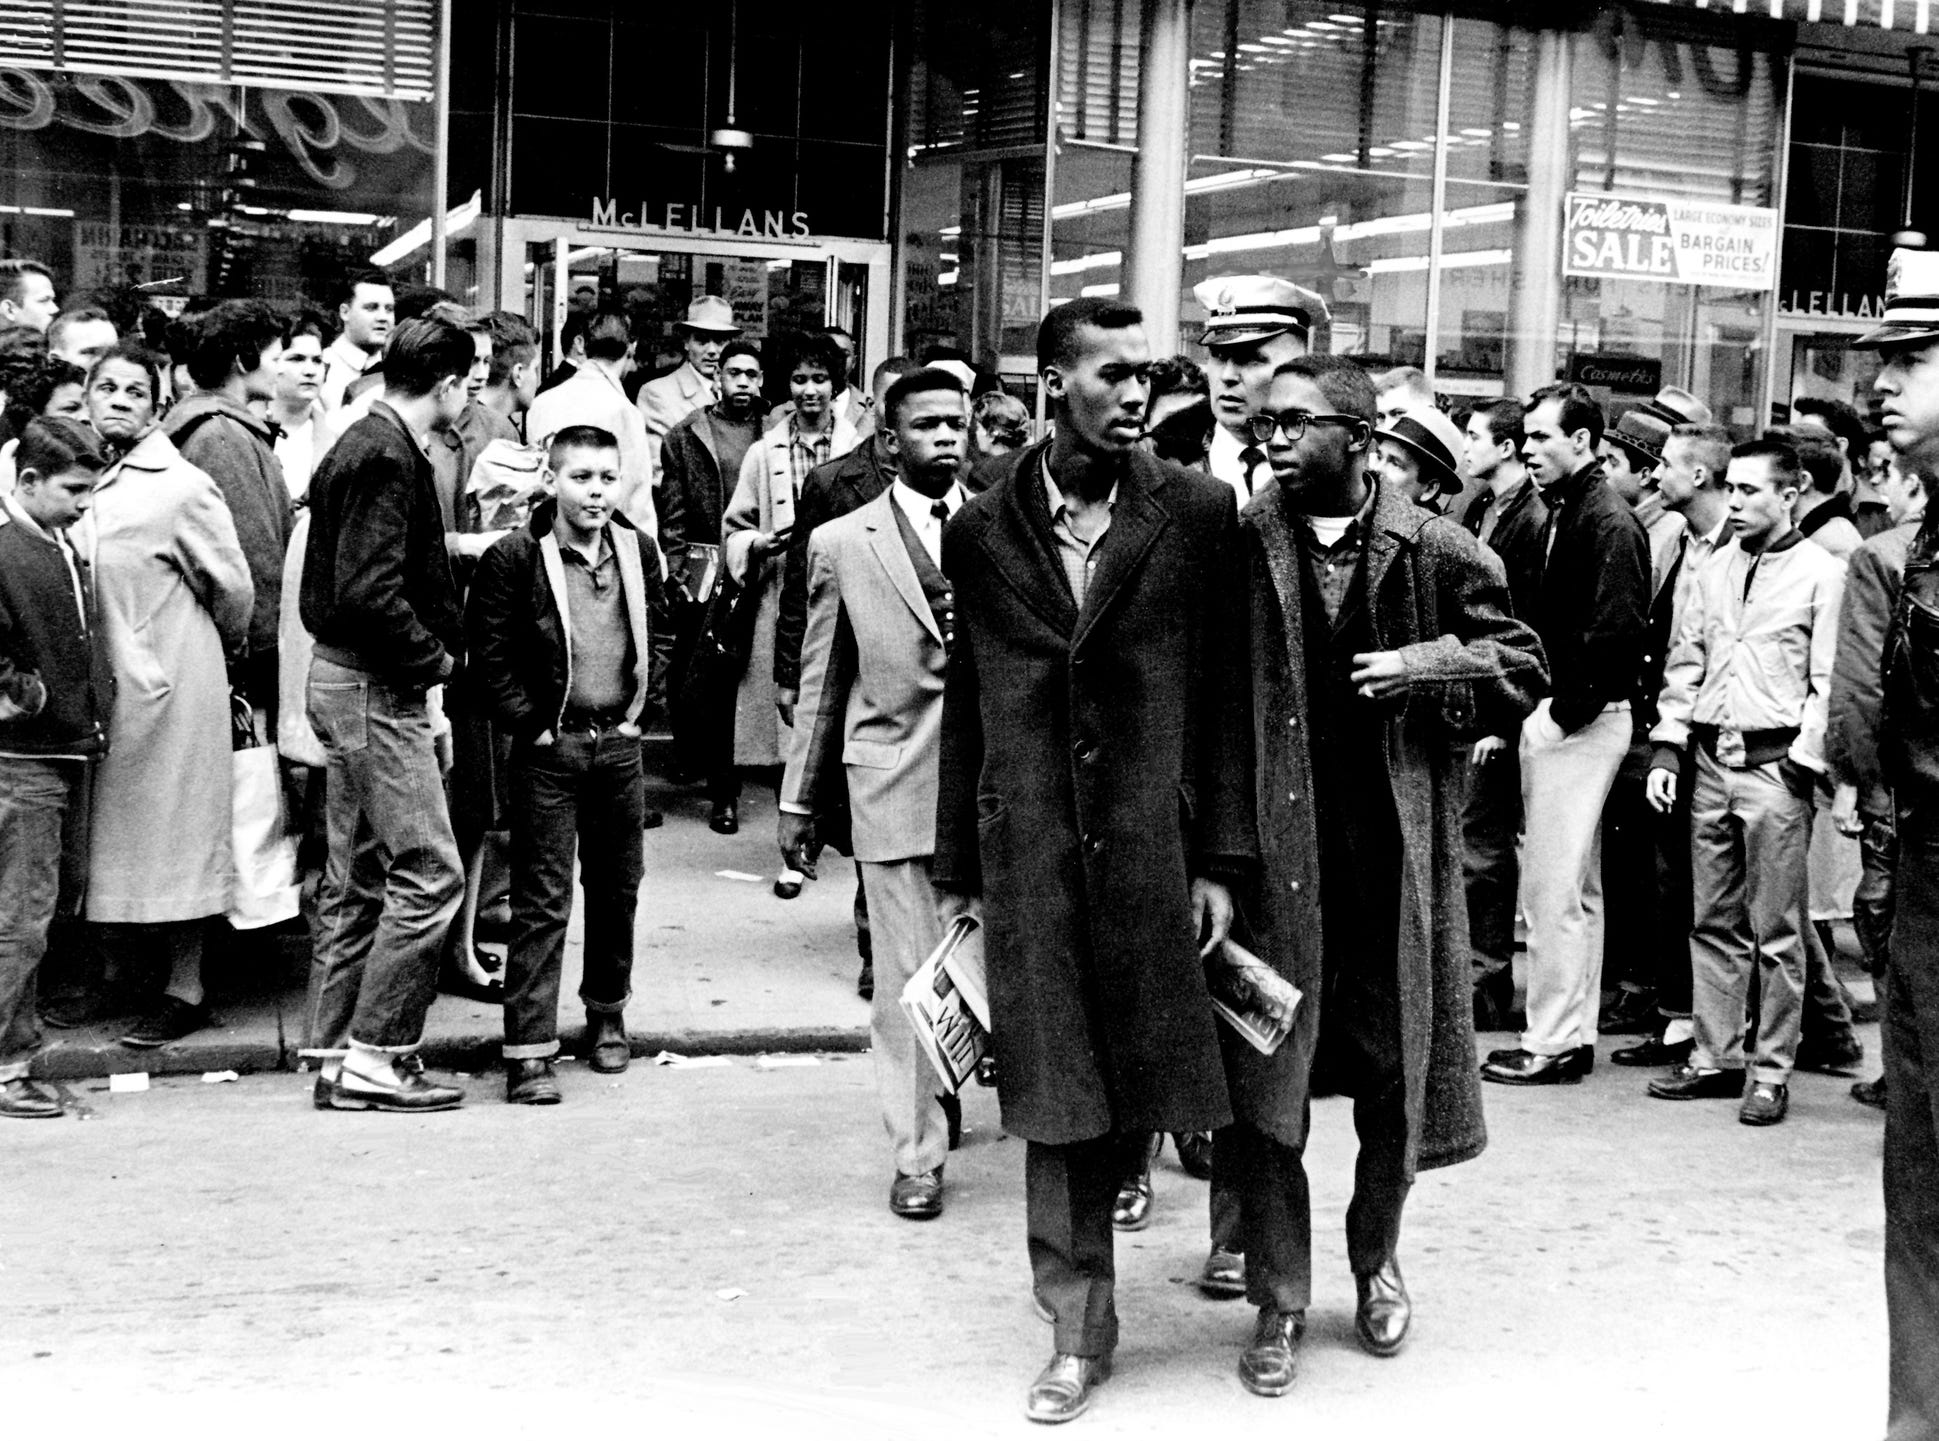 Black demonstrators, including John Lewis, center in light suit, are hustled out of McLellans Variety Store on Fifth Avenue North in downtown Nashville and off to jail after a four-hour demonstration against lunch counter segregation Feb. 27, 1960.